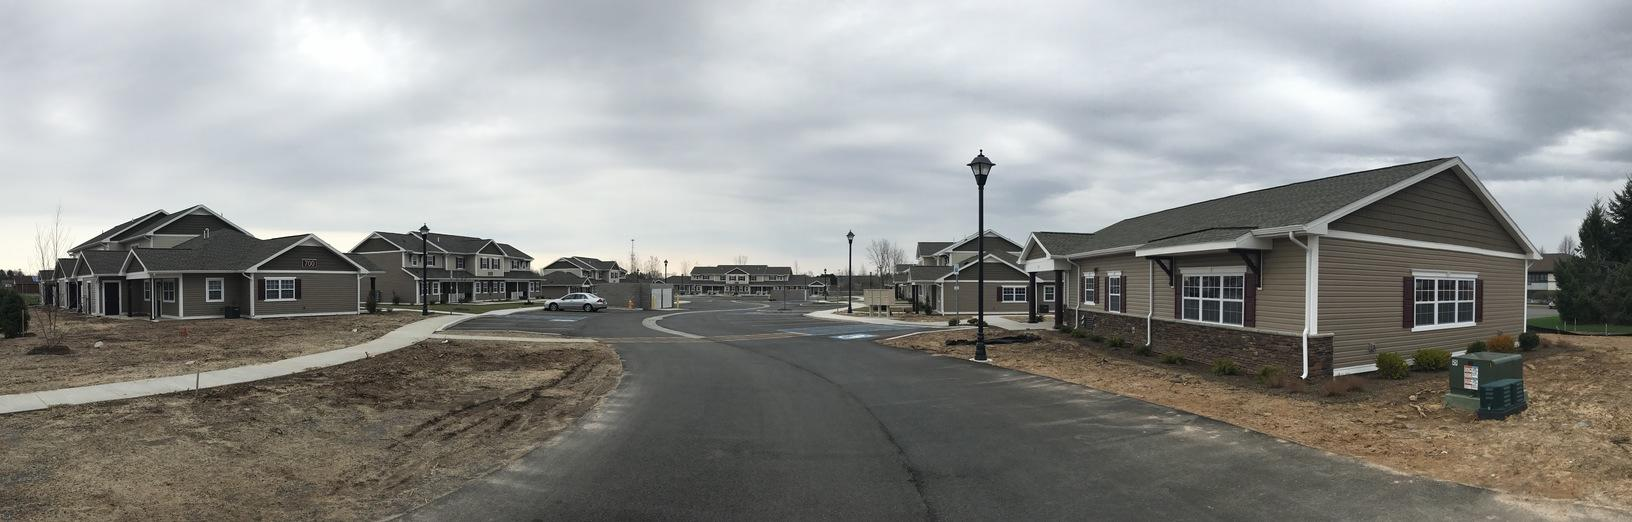 Crerand Commons Housing Complete for Gates, NY